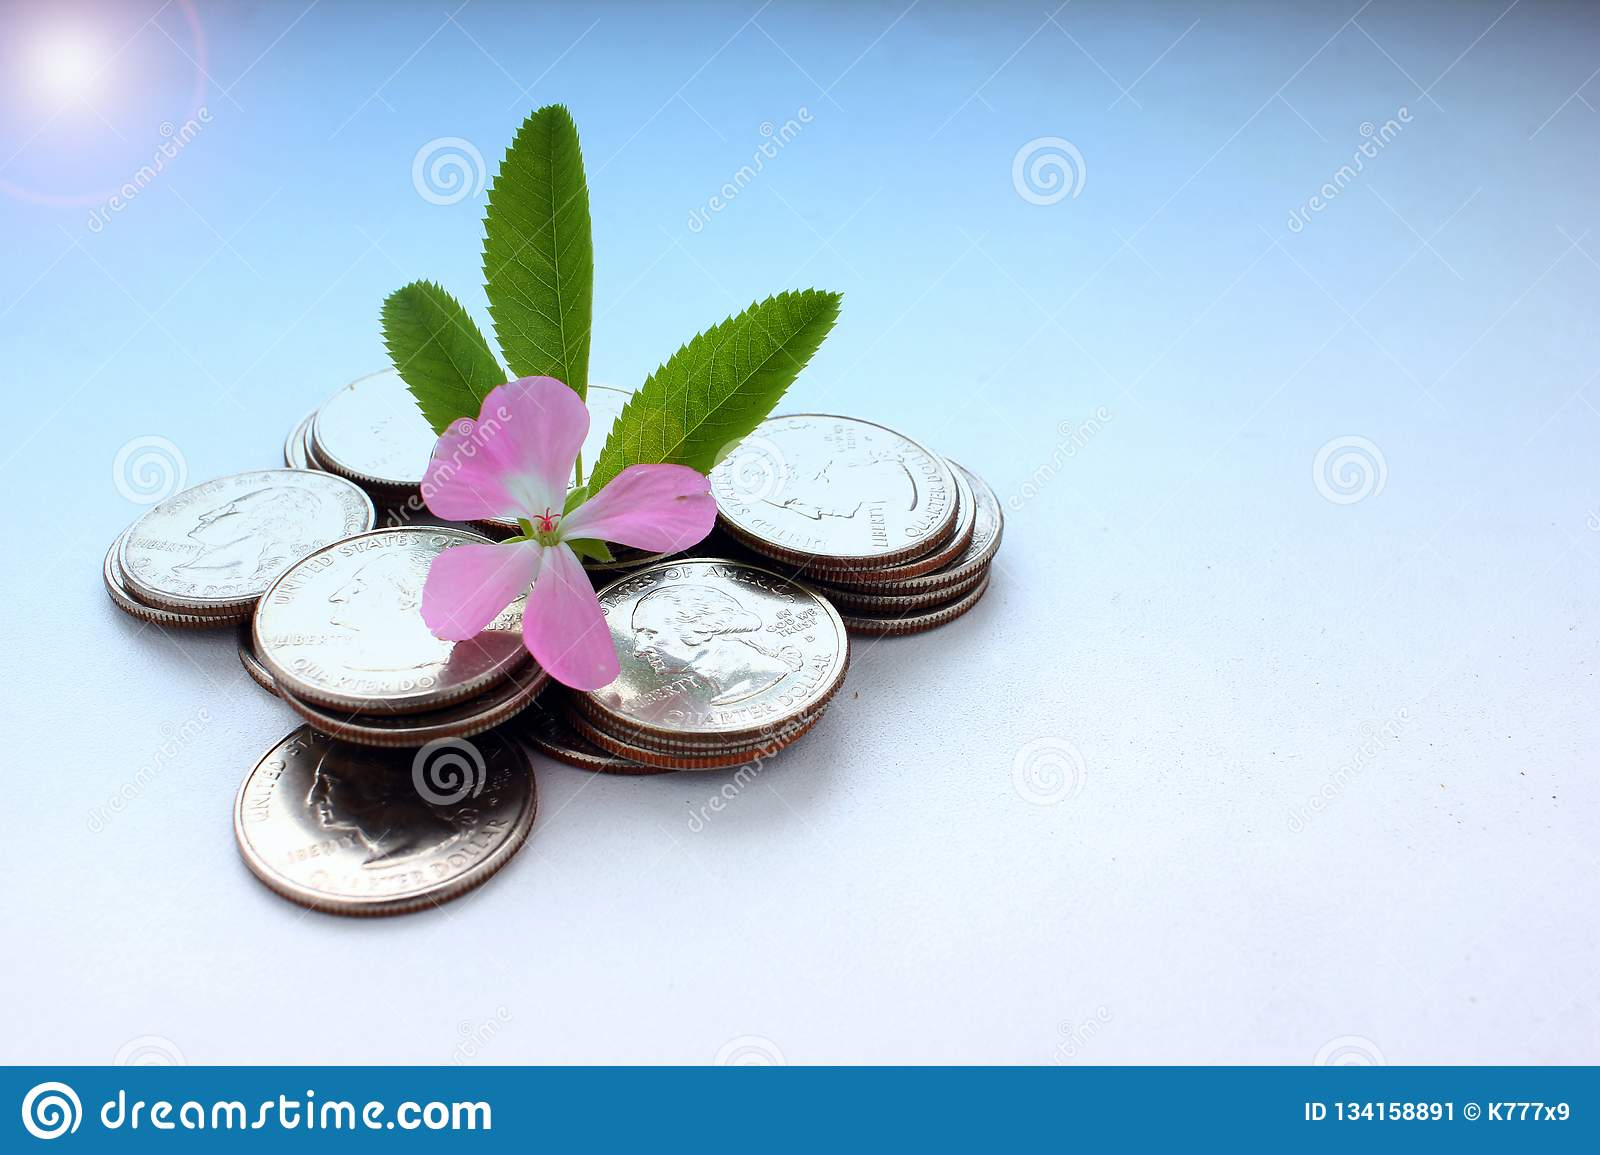 The concept of money growth, the success and prosperity of business as a flower growing at a fast pace, toned